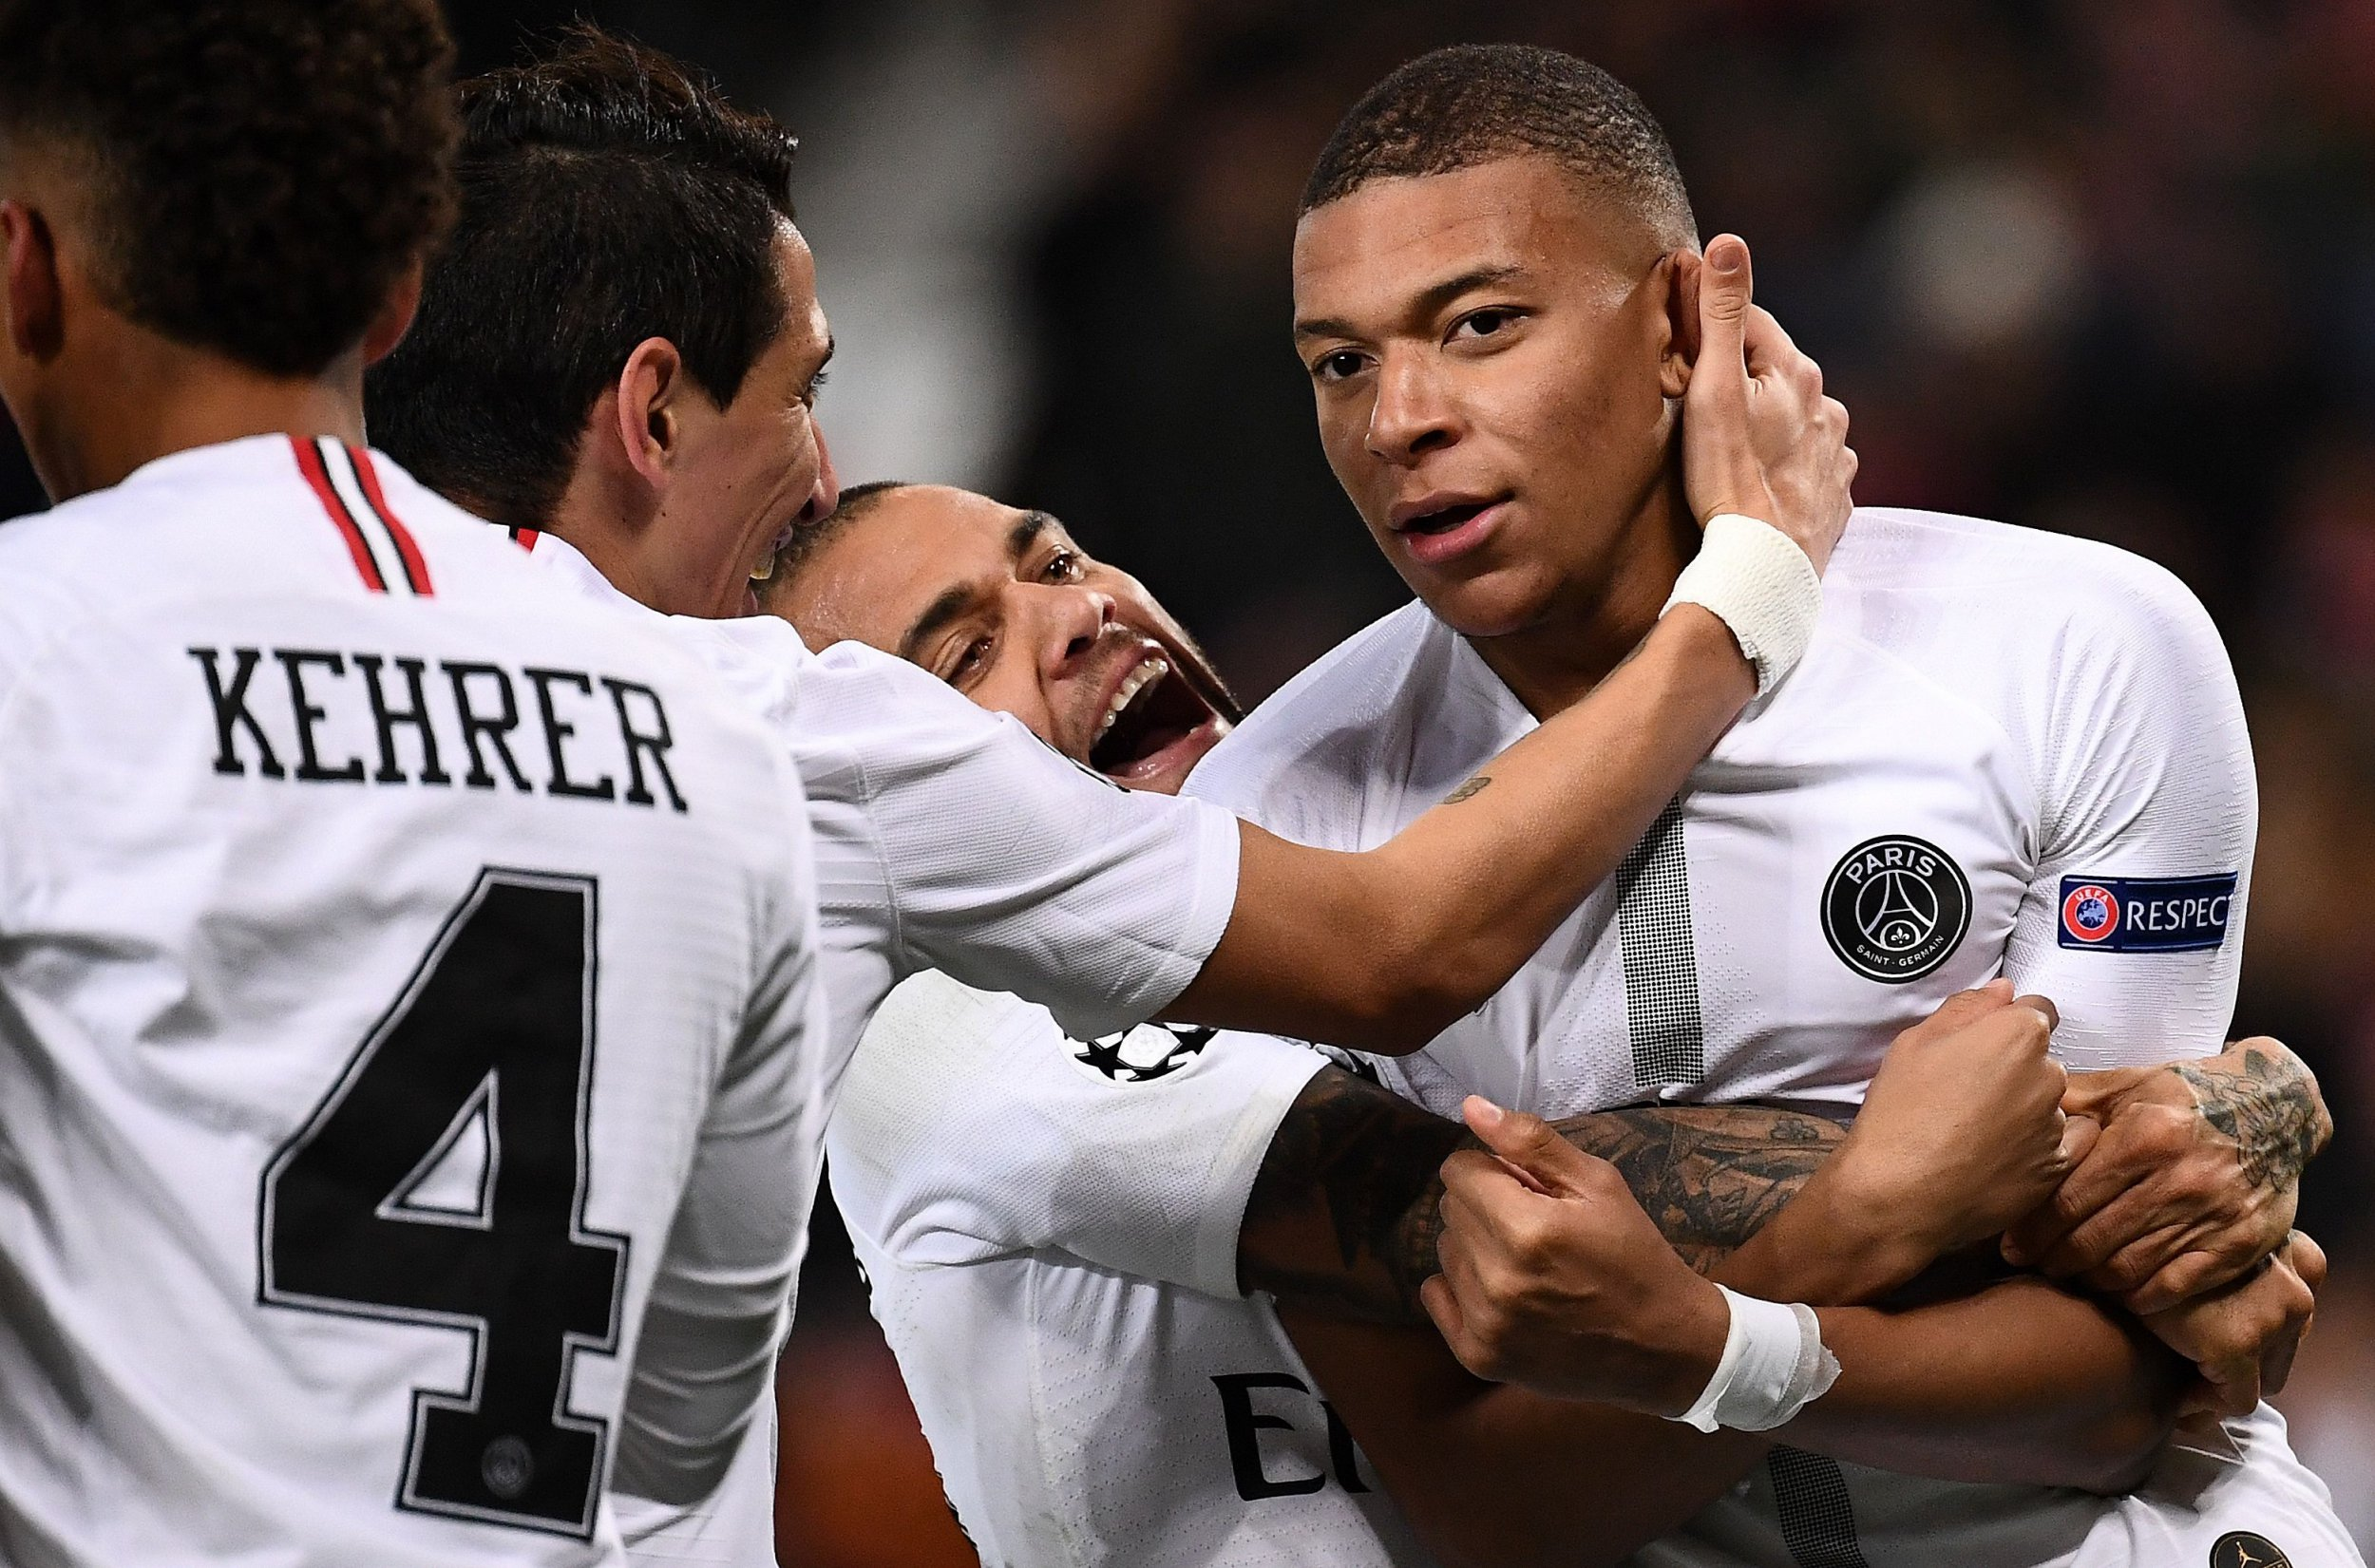 Kylian Mbappe hands Ole Gunnar Solskjaer and Man Utd a Champions League reality check